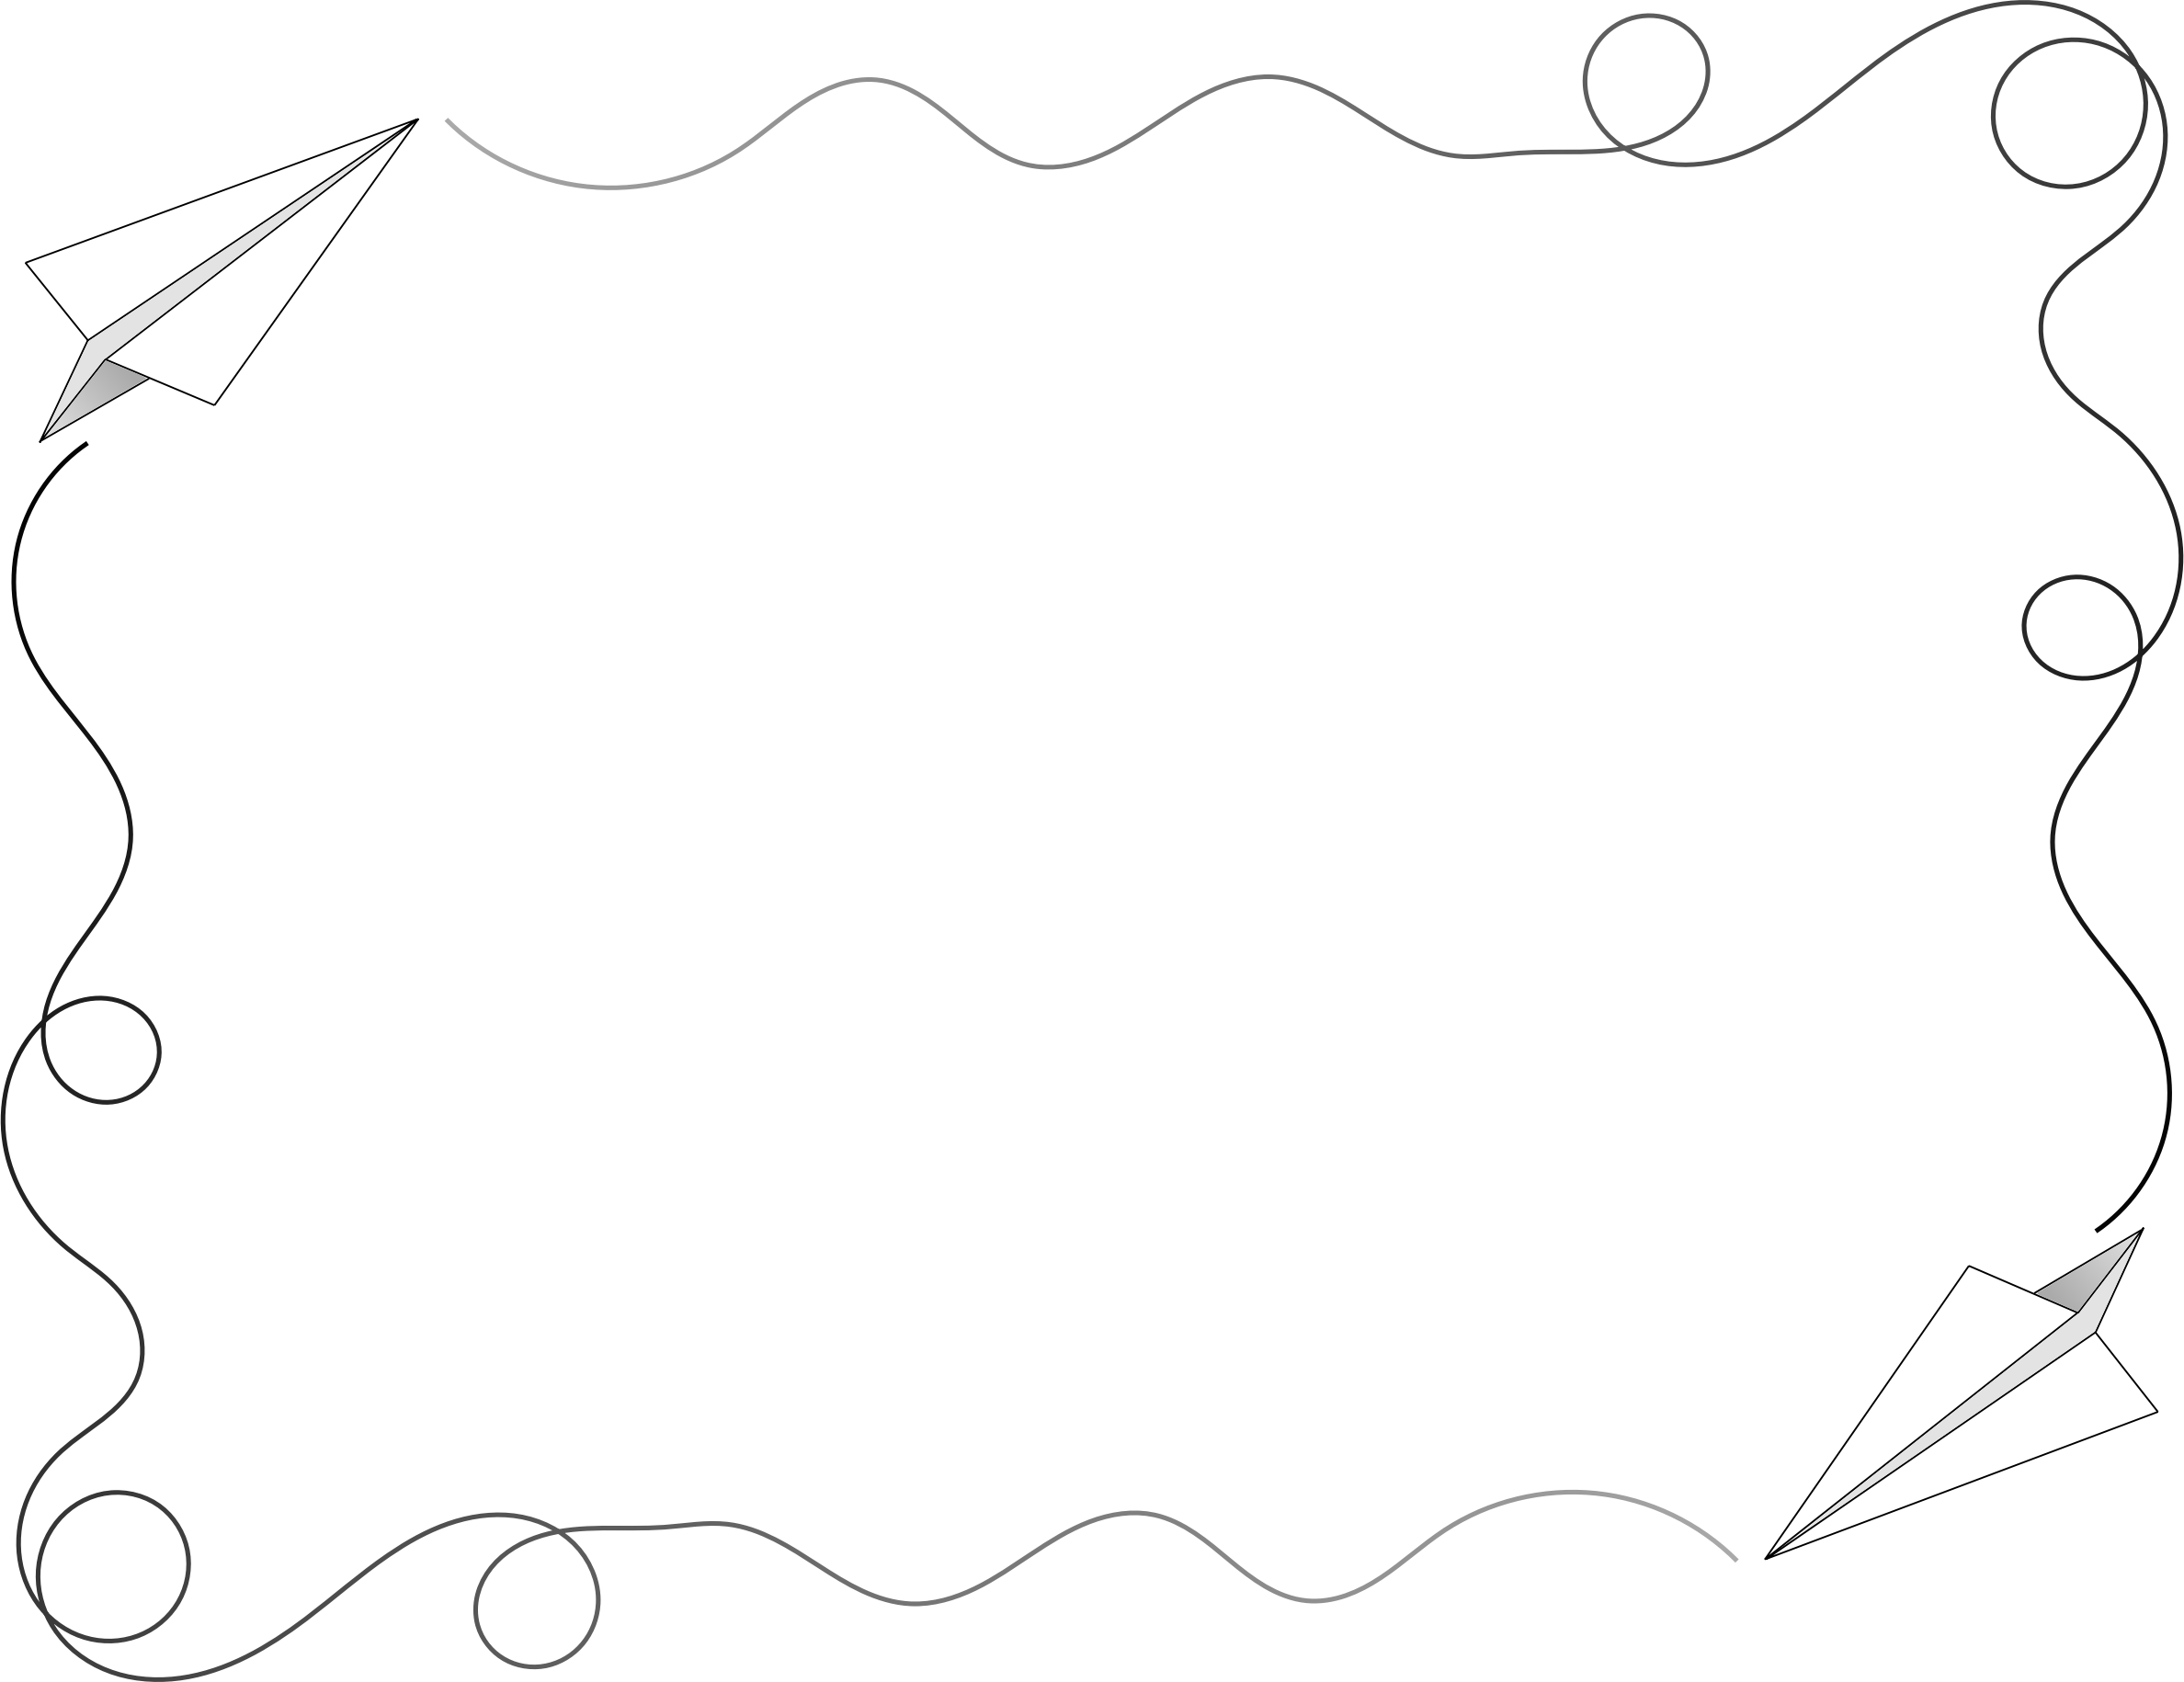 Geoboard snowflake clipart banner black and white stock Paper Airplane Border by @Arvin61r58, Paper Airplane Frame/Border ... banner black and white stock